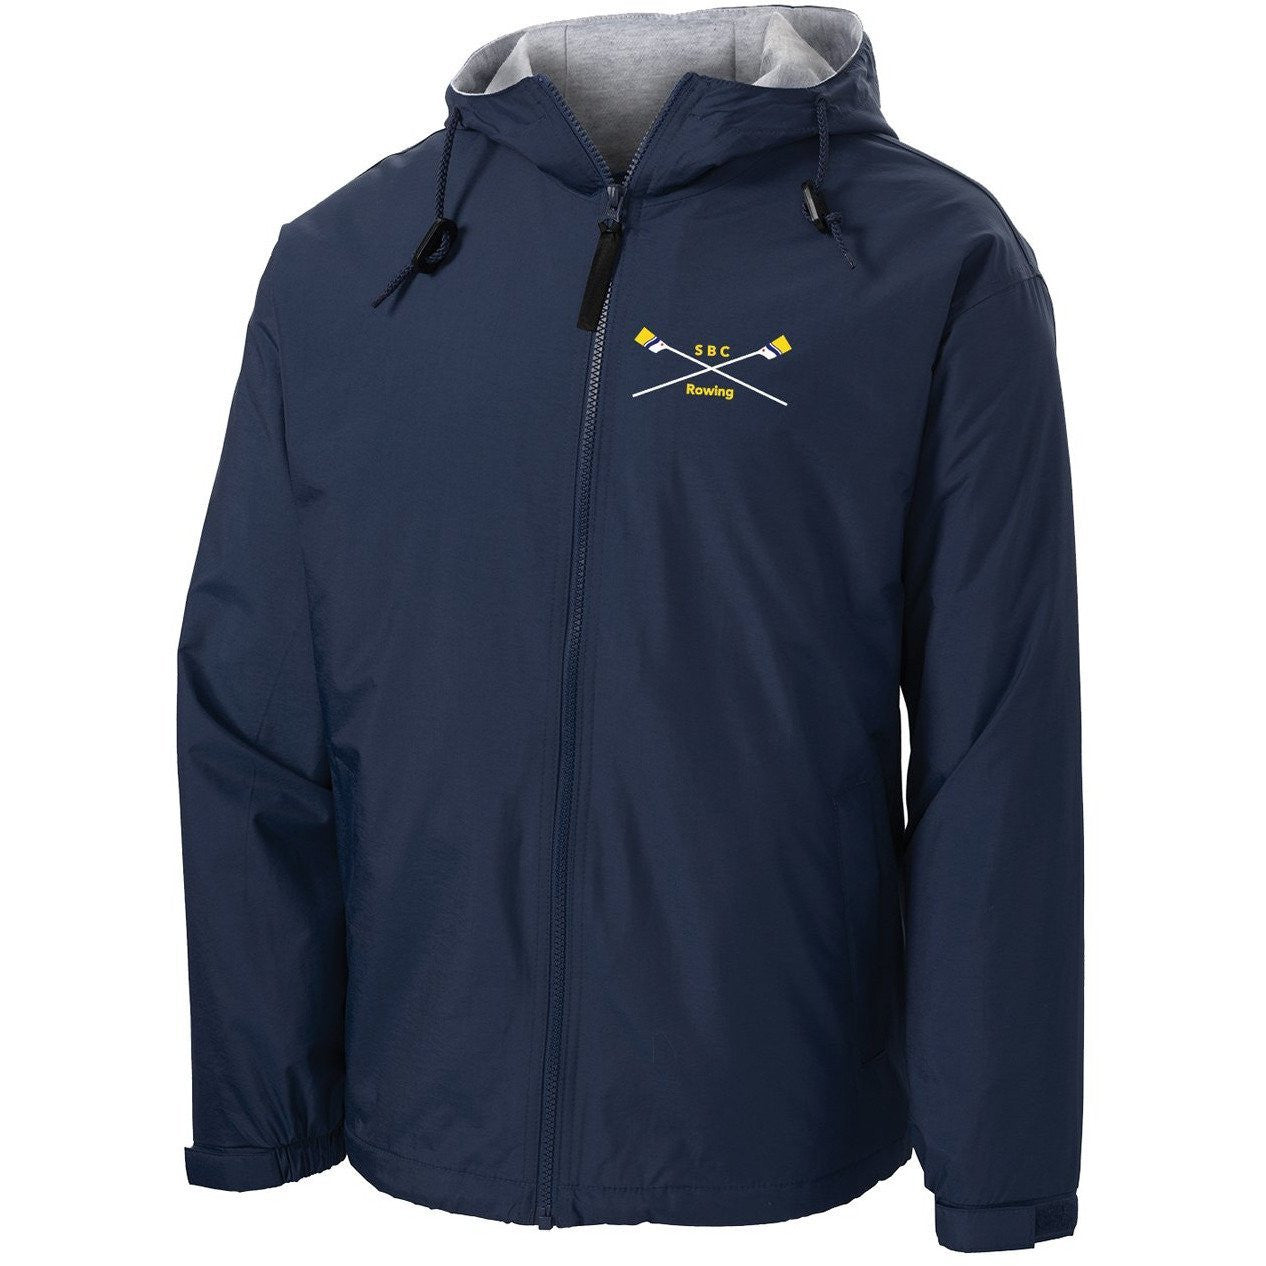 Full Length Duluth Rowing Club Parka